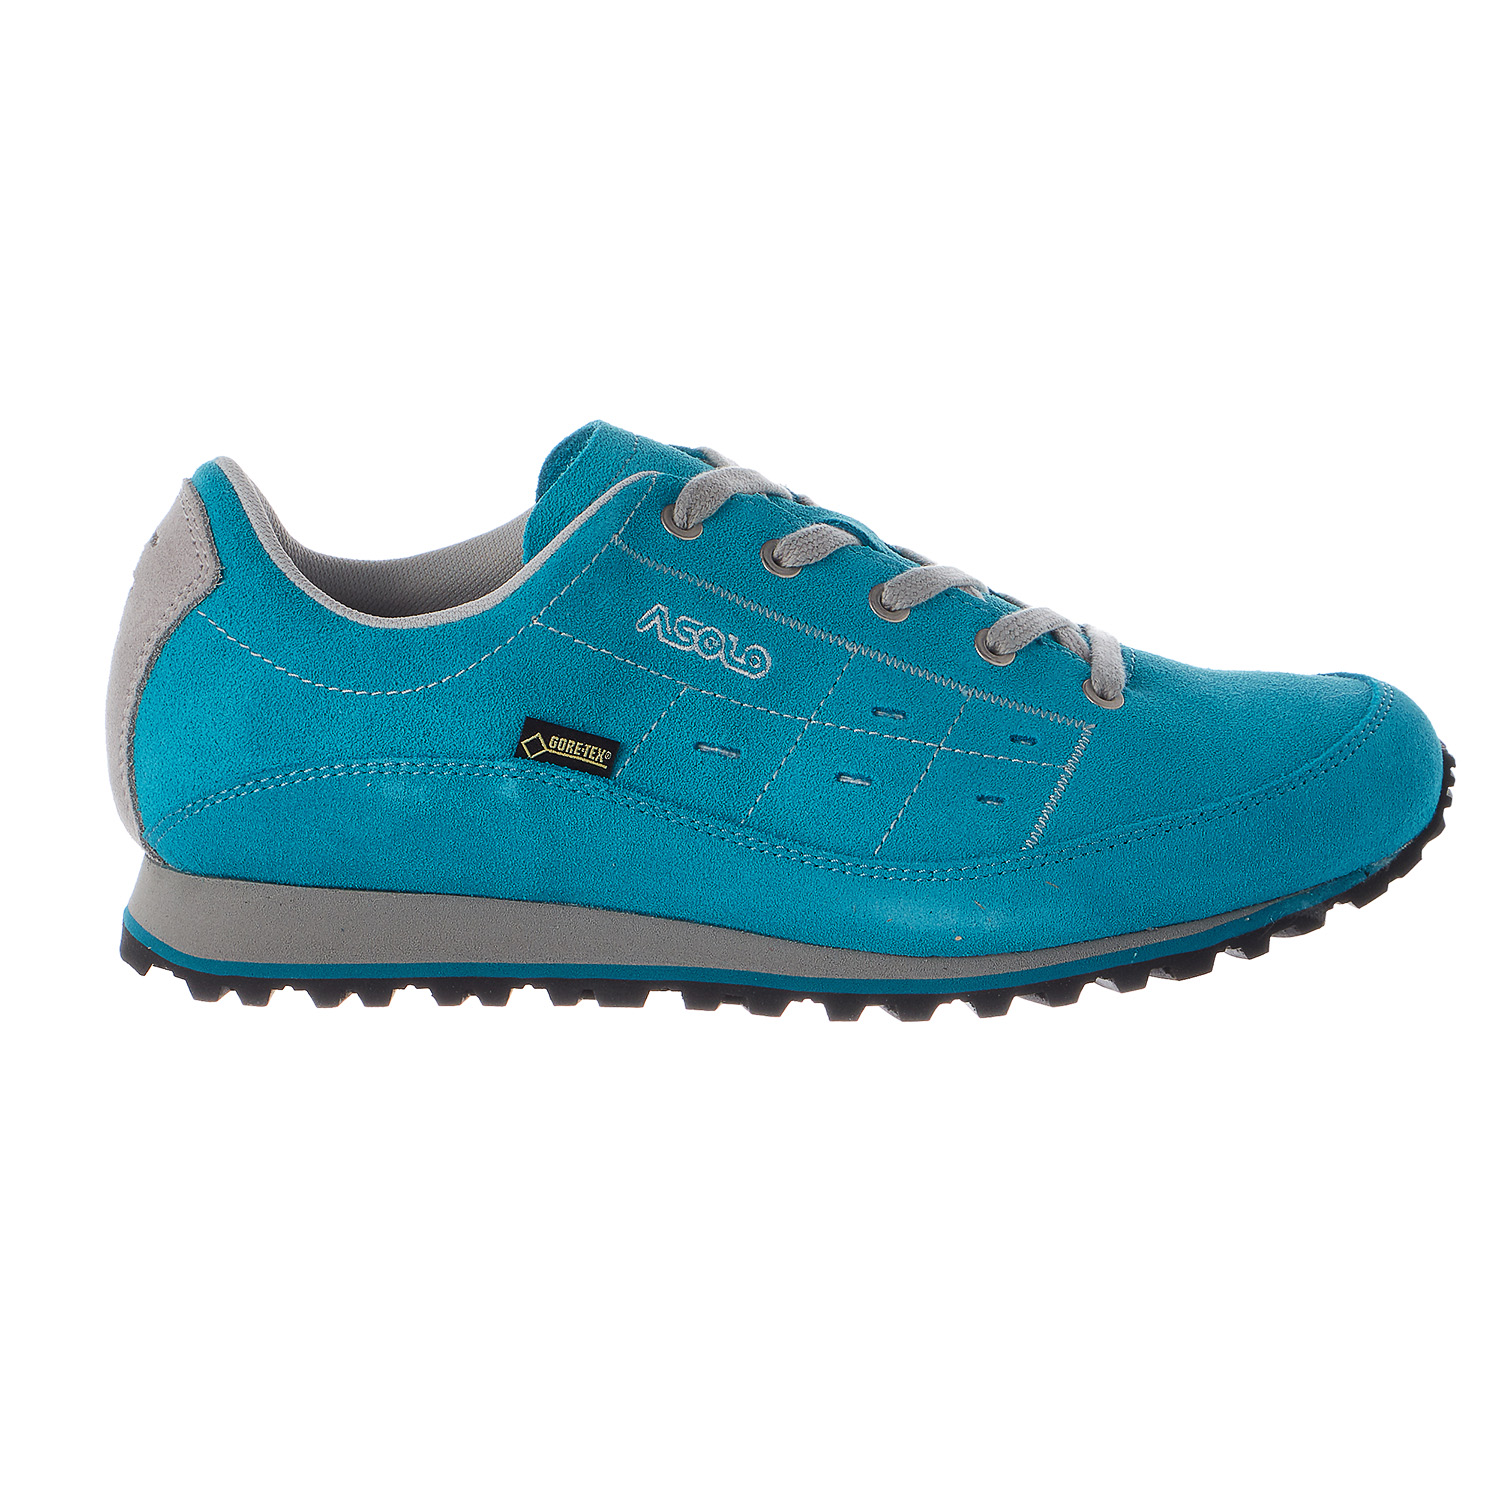 Asolo Aster GV Shoes Womens by Asolo